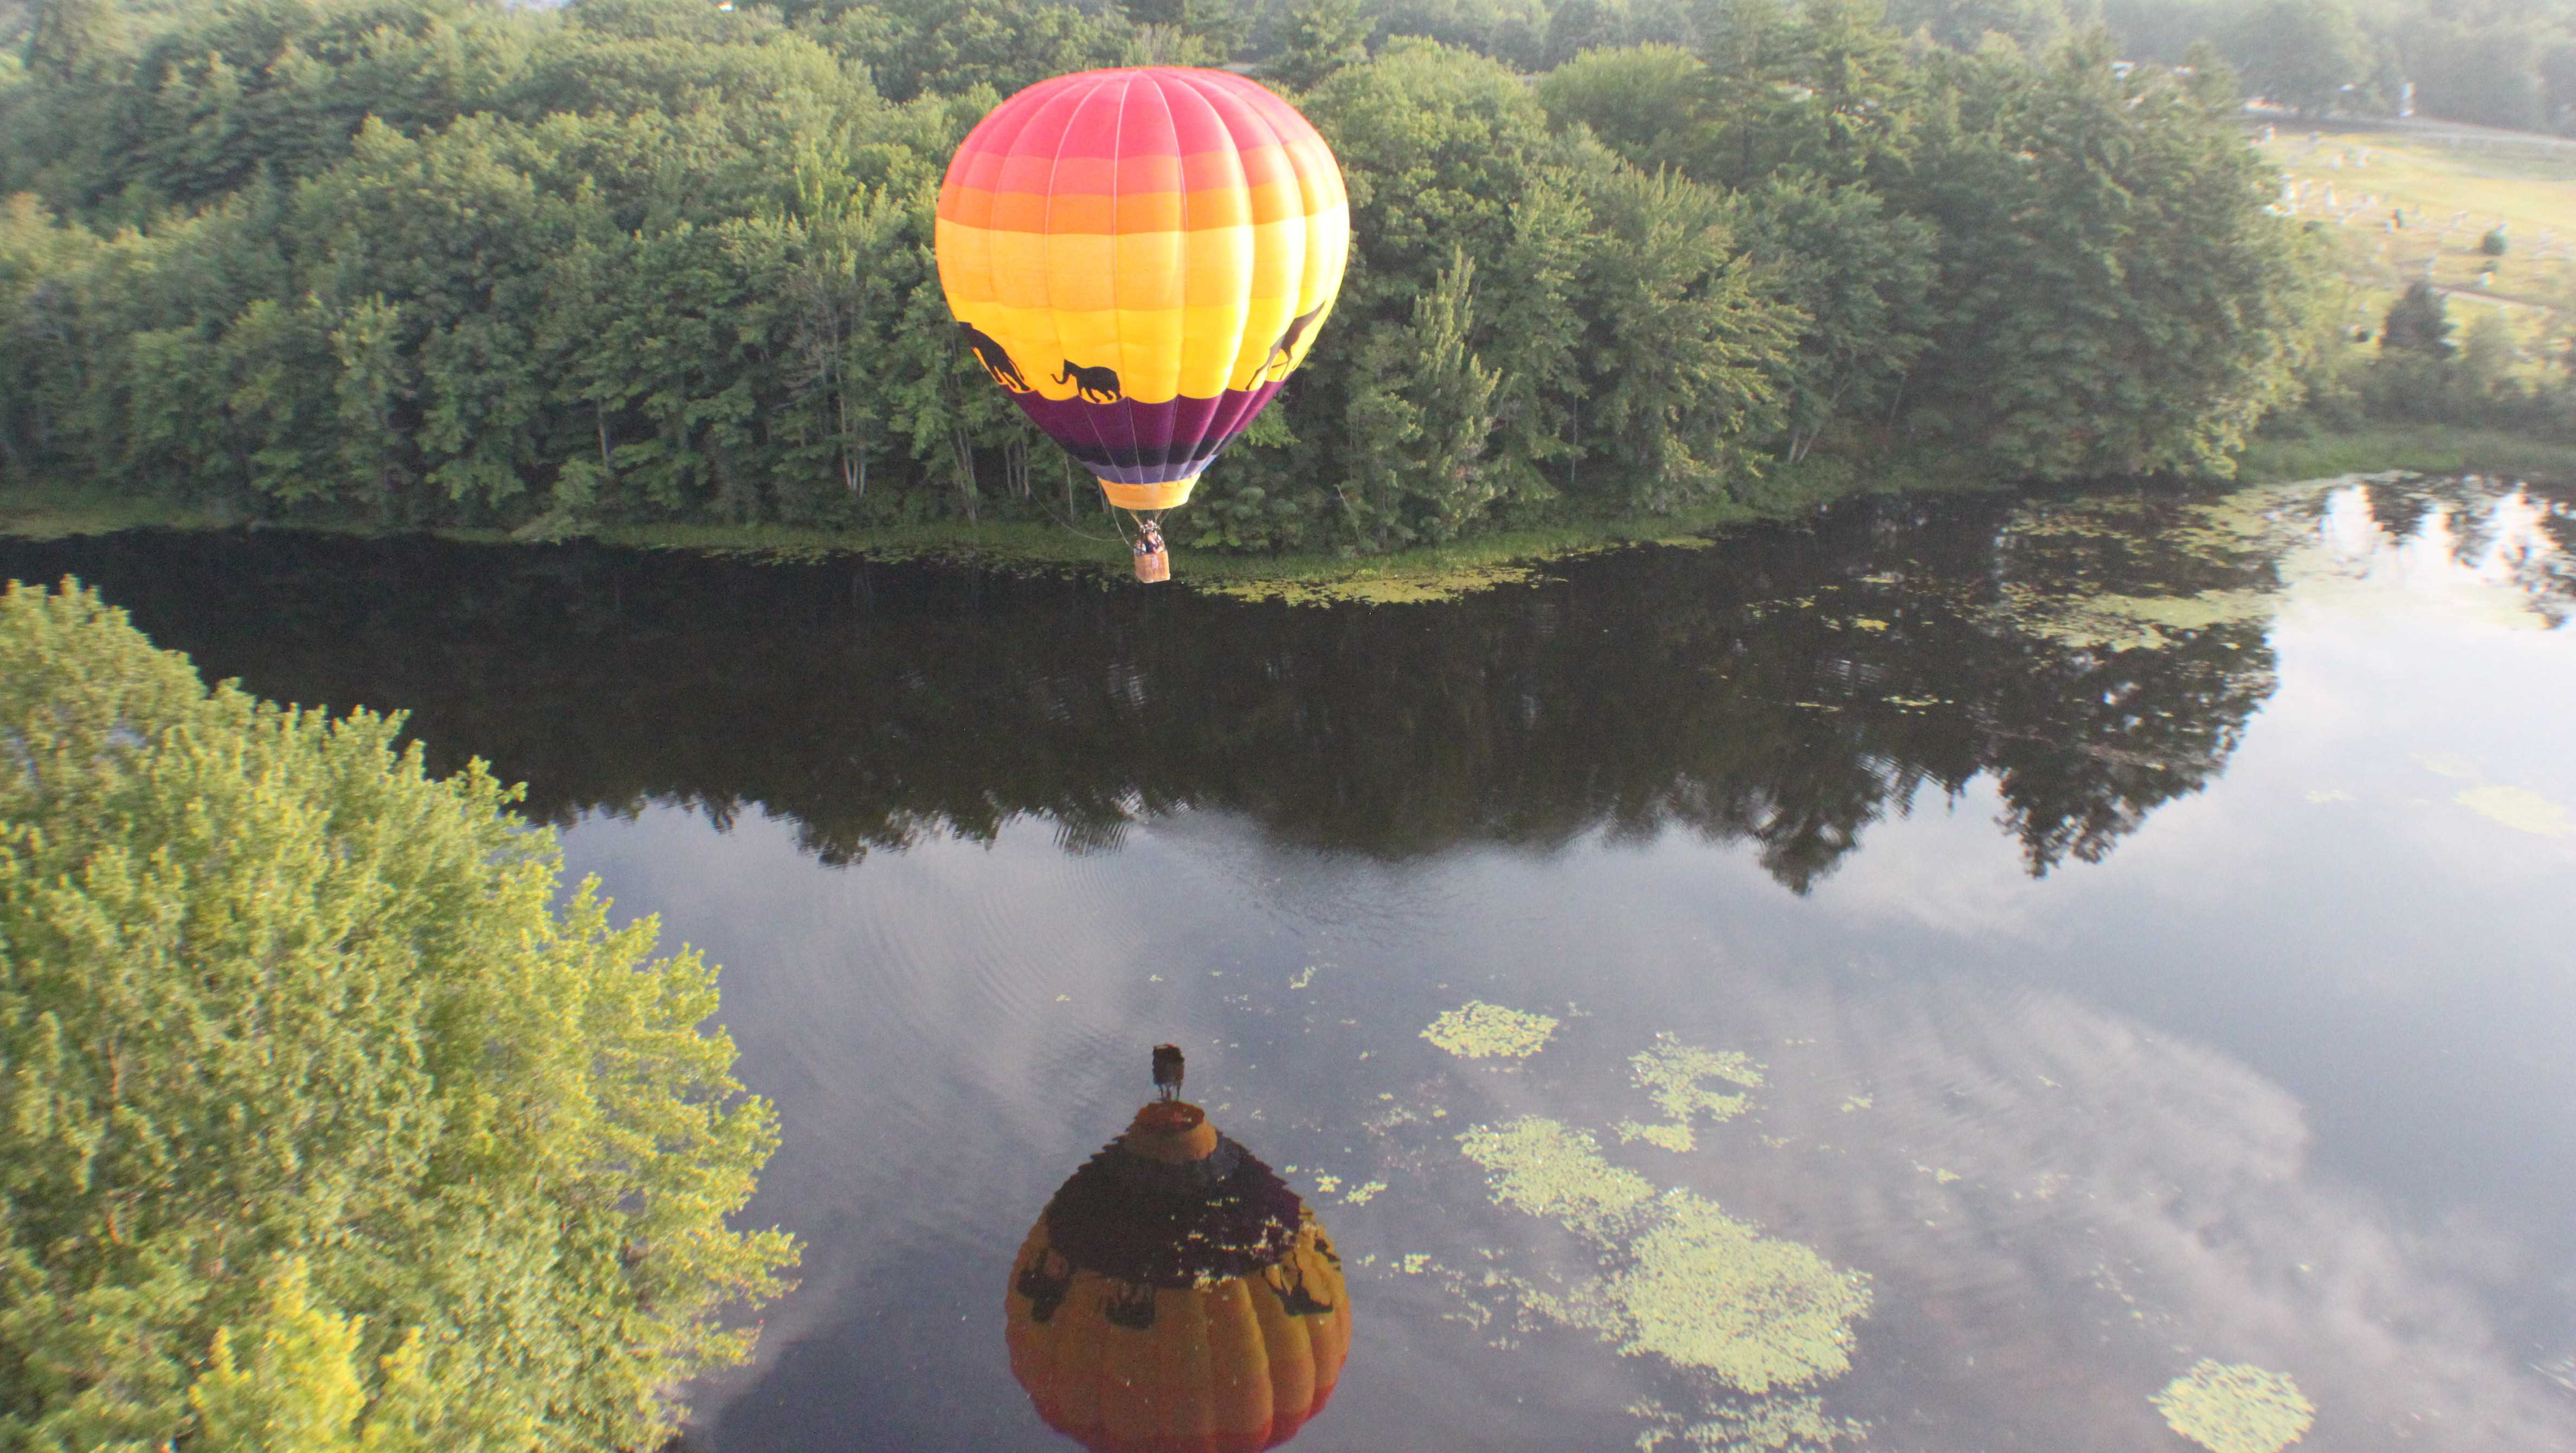 36th annual Suncook Valley Rotary Hot Air Balloon Rally held in Pittsfield Aug. 4-6